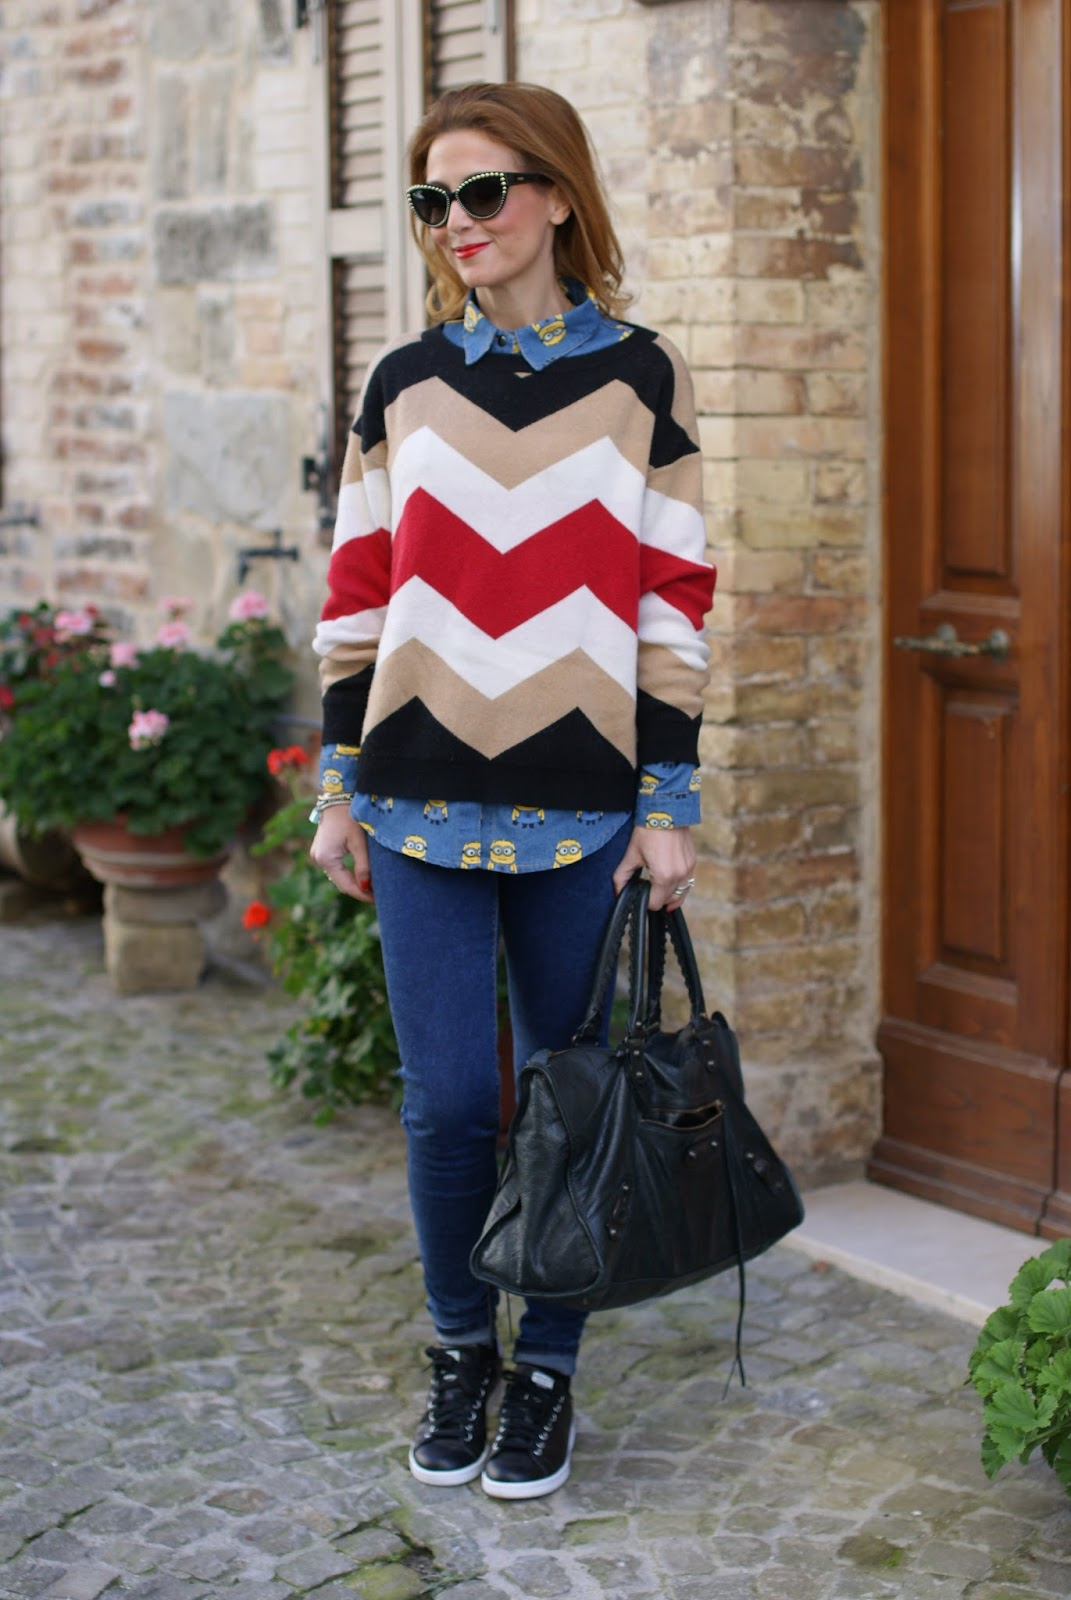 Minions clothing for adults, Minions camicia jeans, Balenciaga work bag and chevron sweater on Fashion and Cookies fashion blog, fashion blogger style